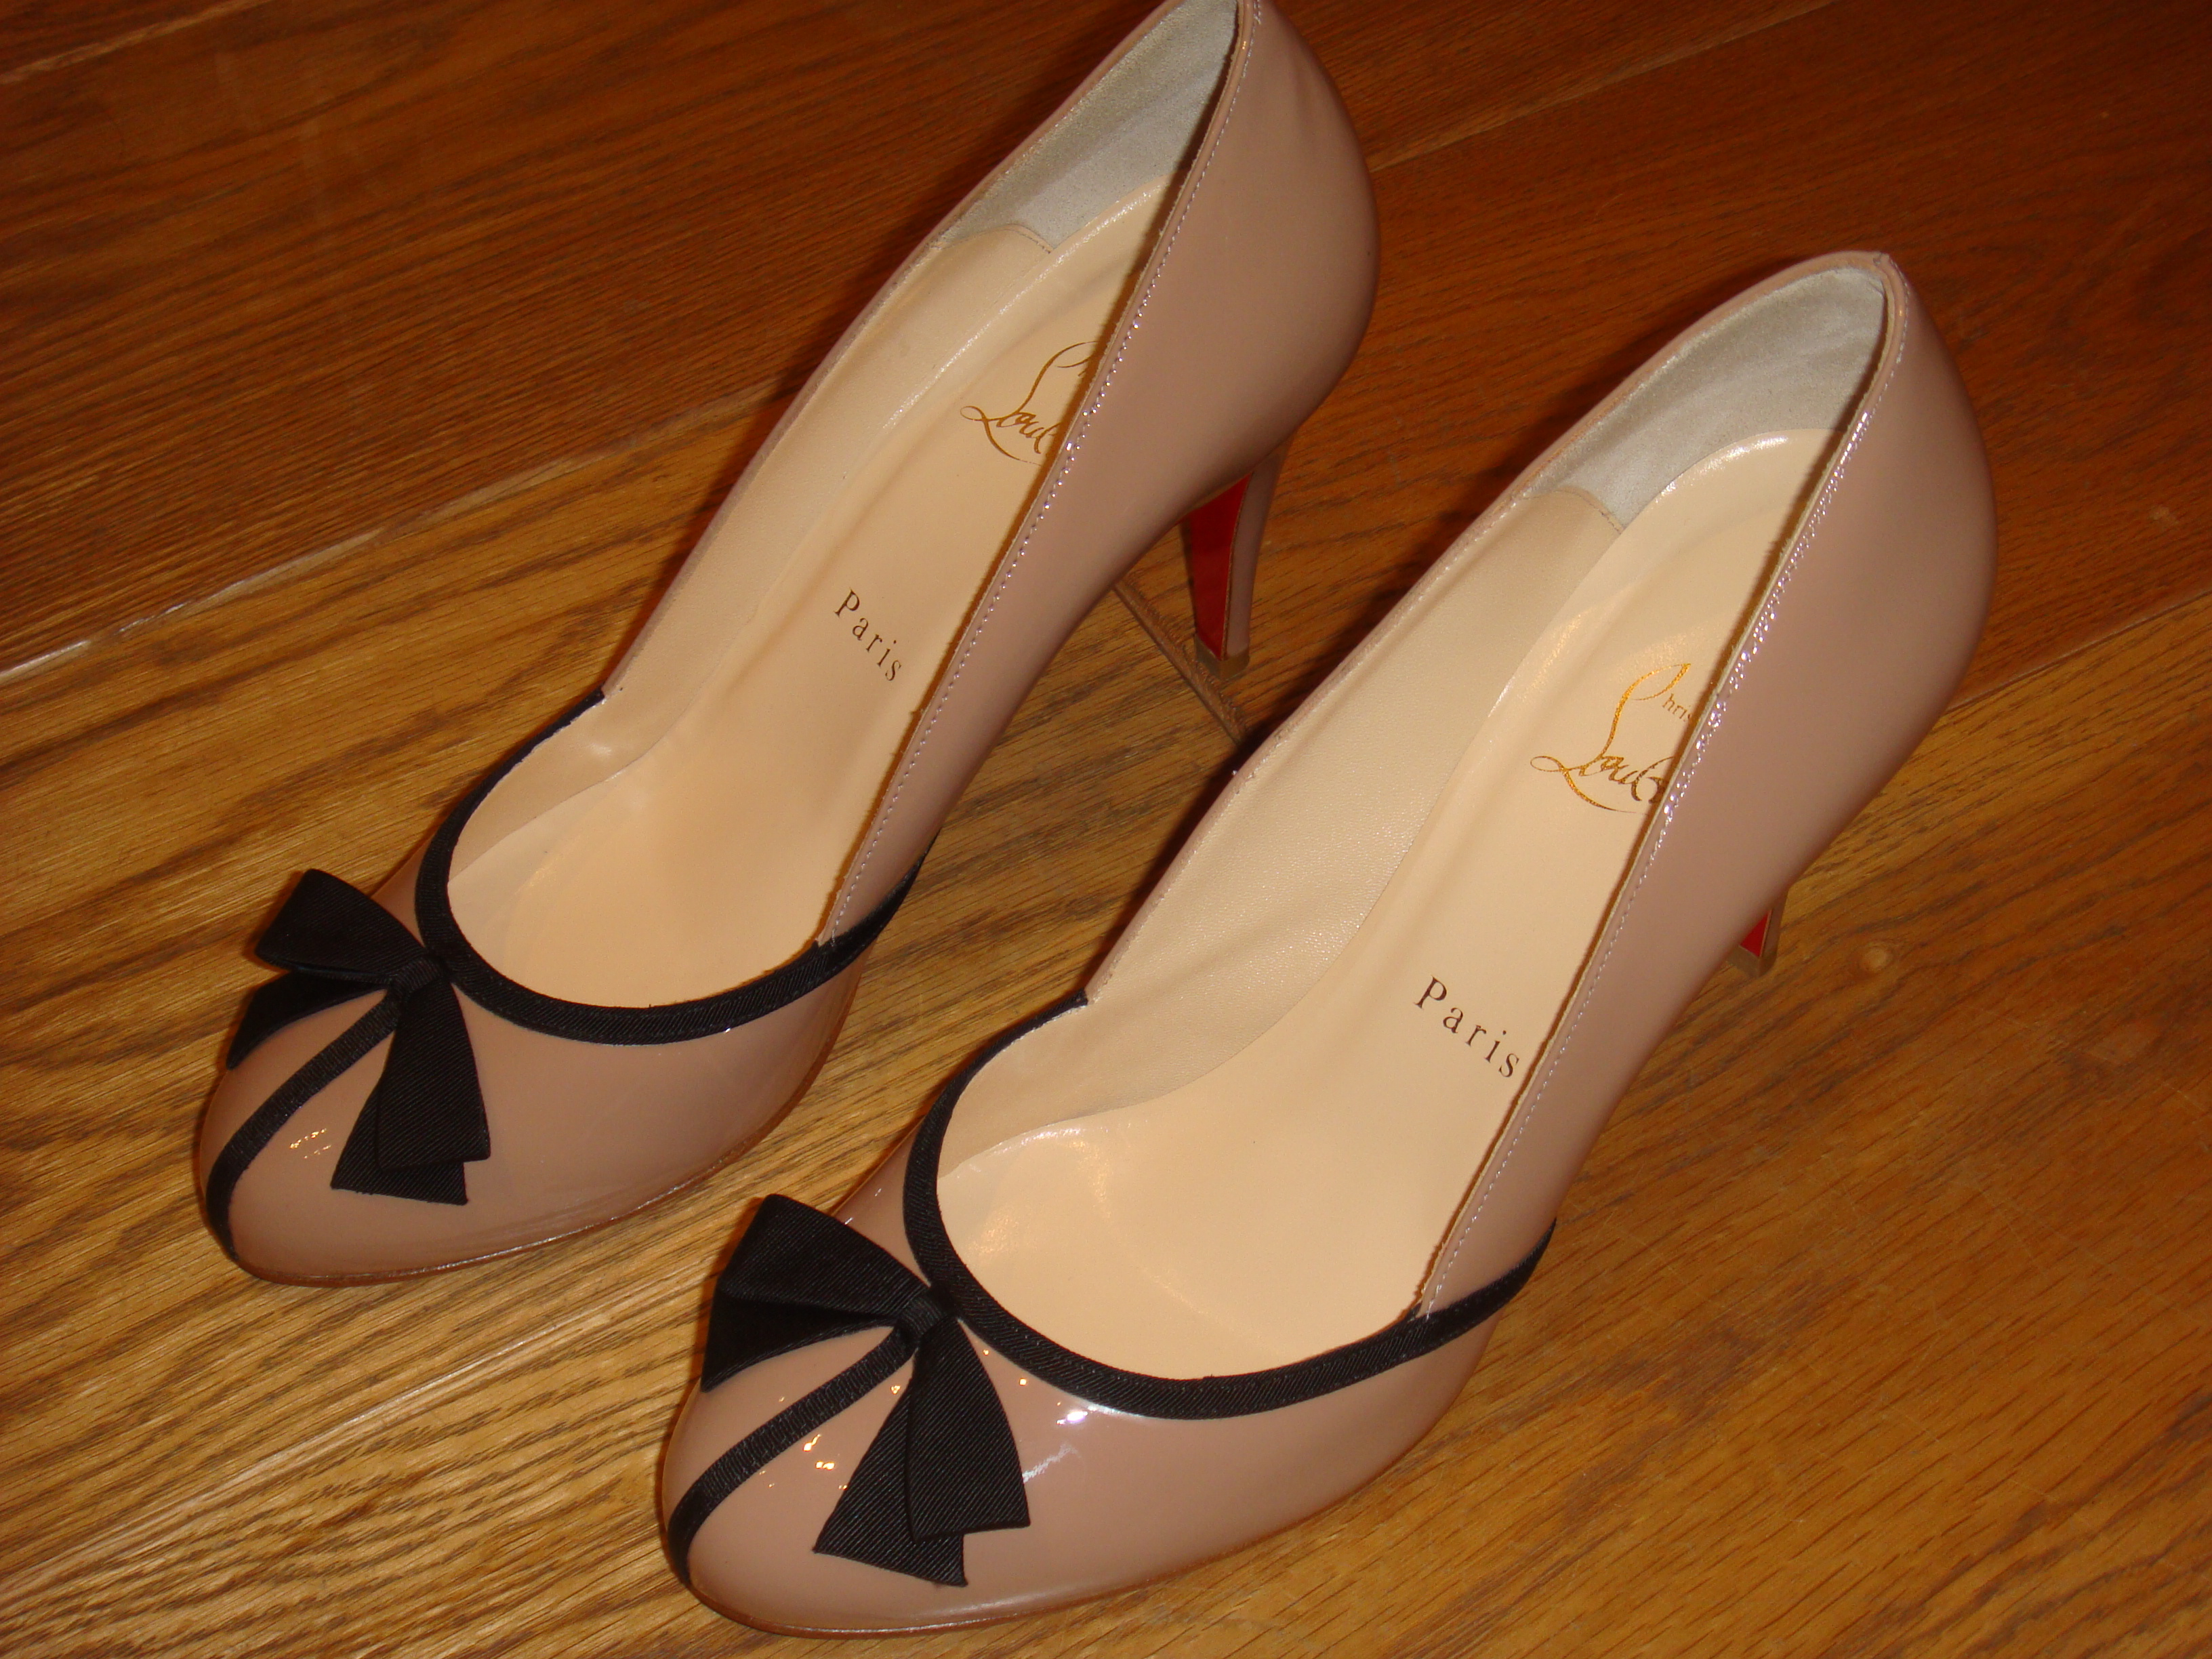 working for christian louboutin